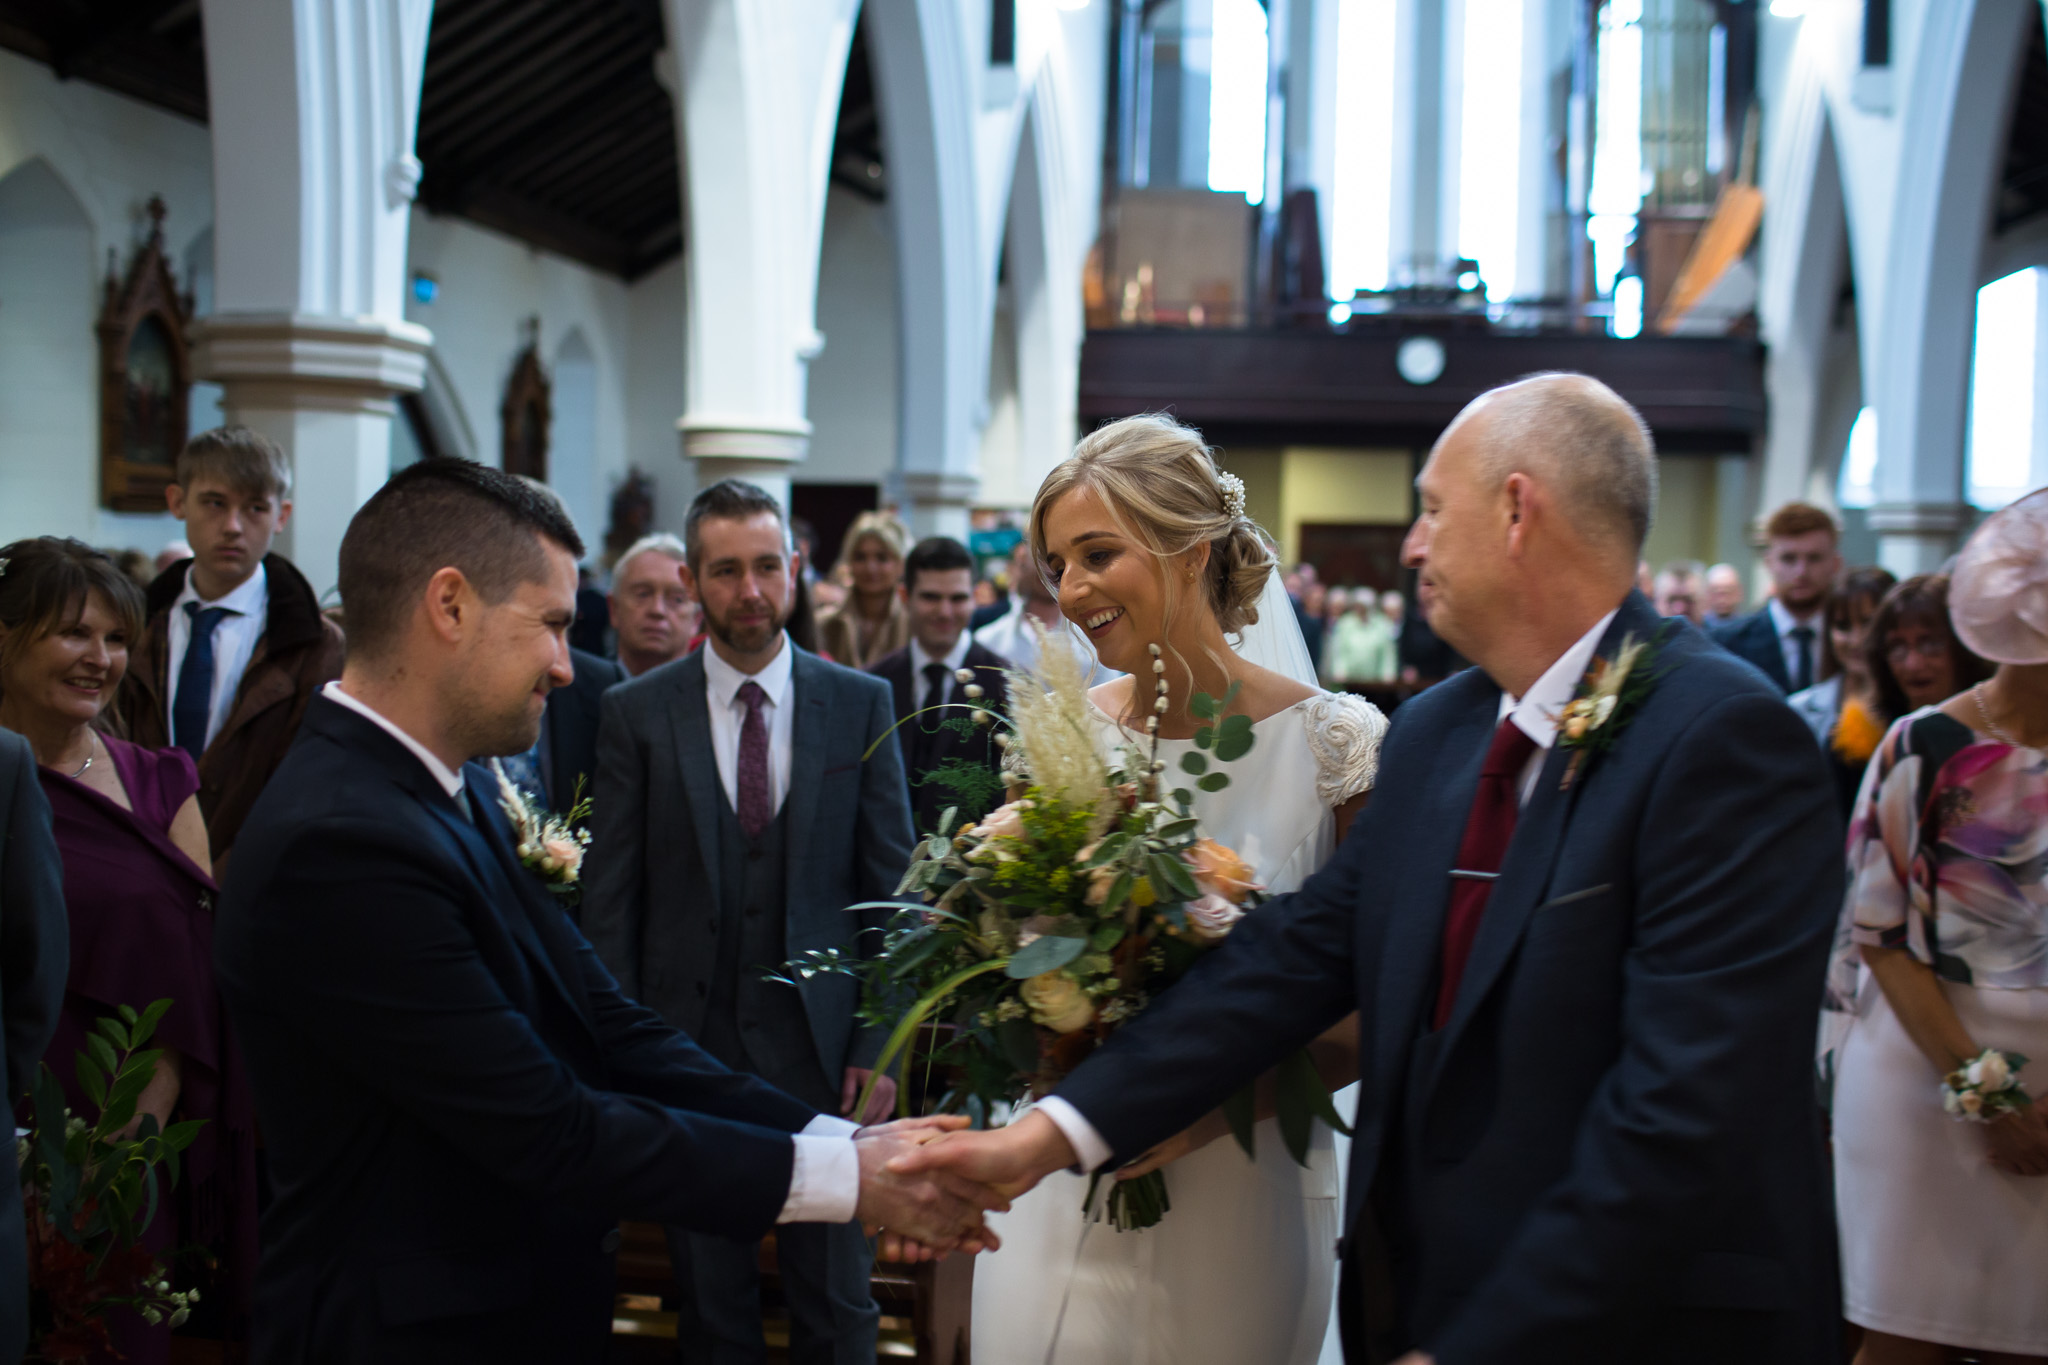 Mark_Barnes_Northern_Ireland_Wedding_Photography_Ballyscullion_Park_Wedding_Photography_Stef&Bobby-18.jpg